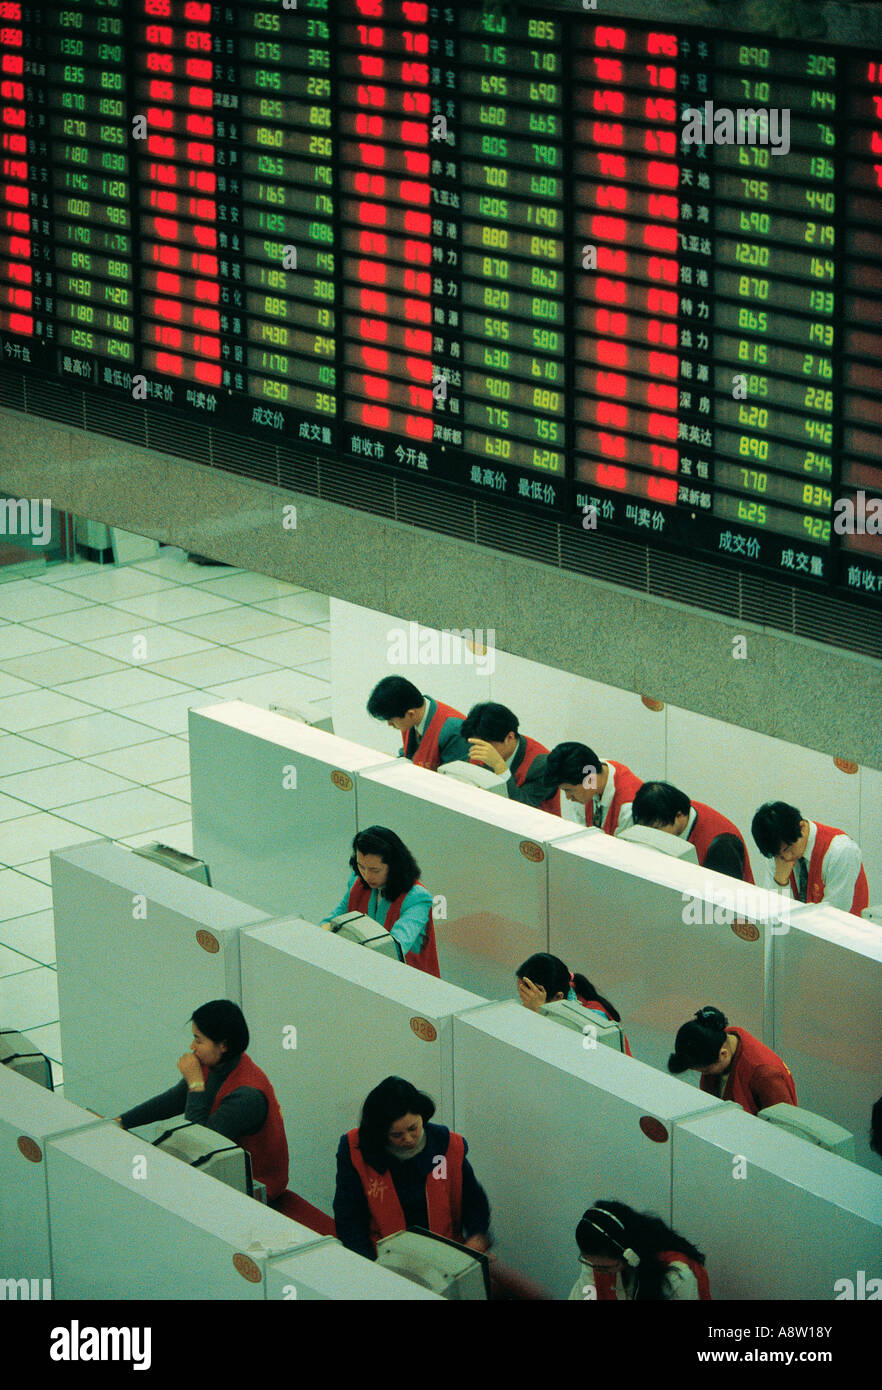 China. Shenzhen Stock Exchange. High viewpoint of dealers. - Stock Image